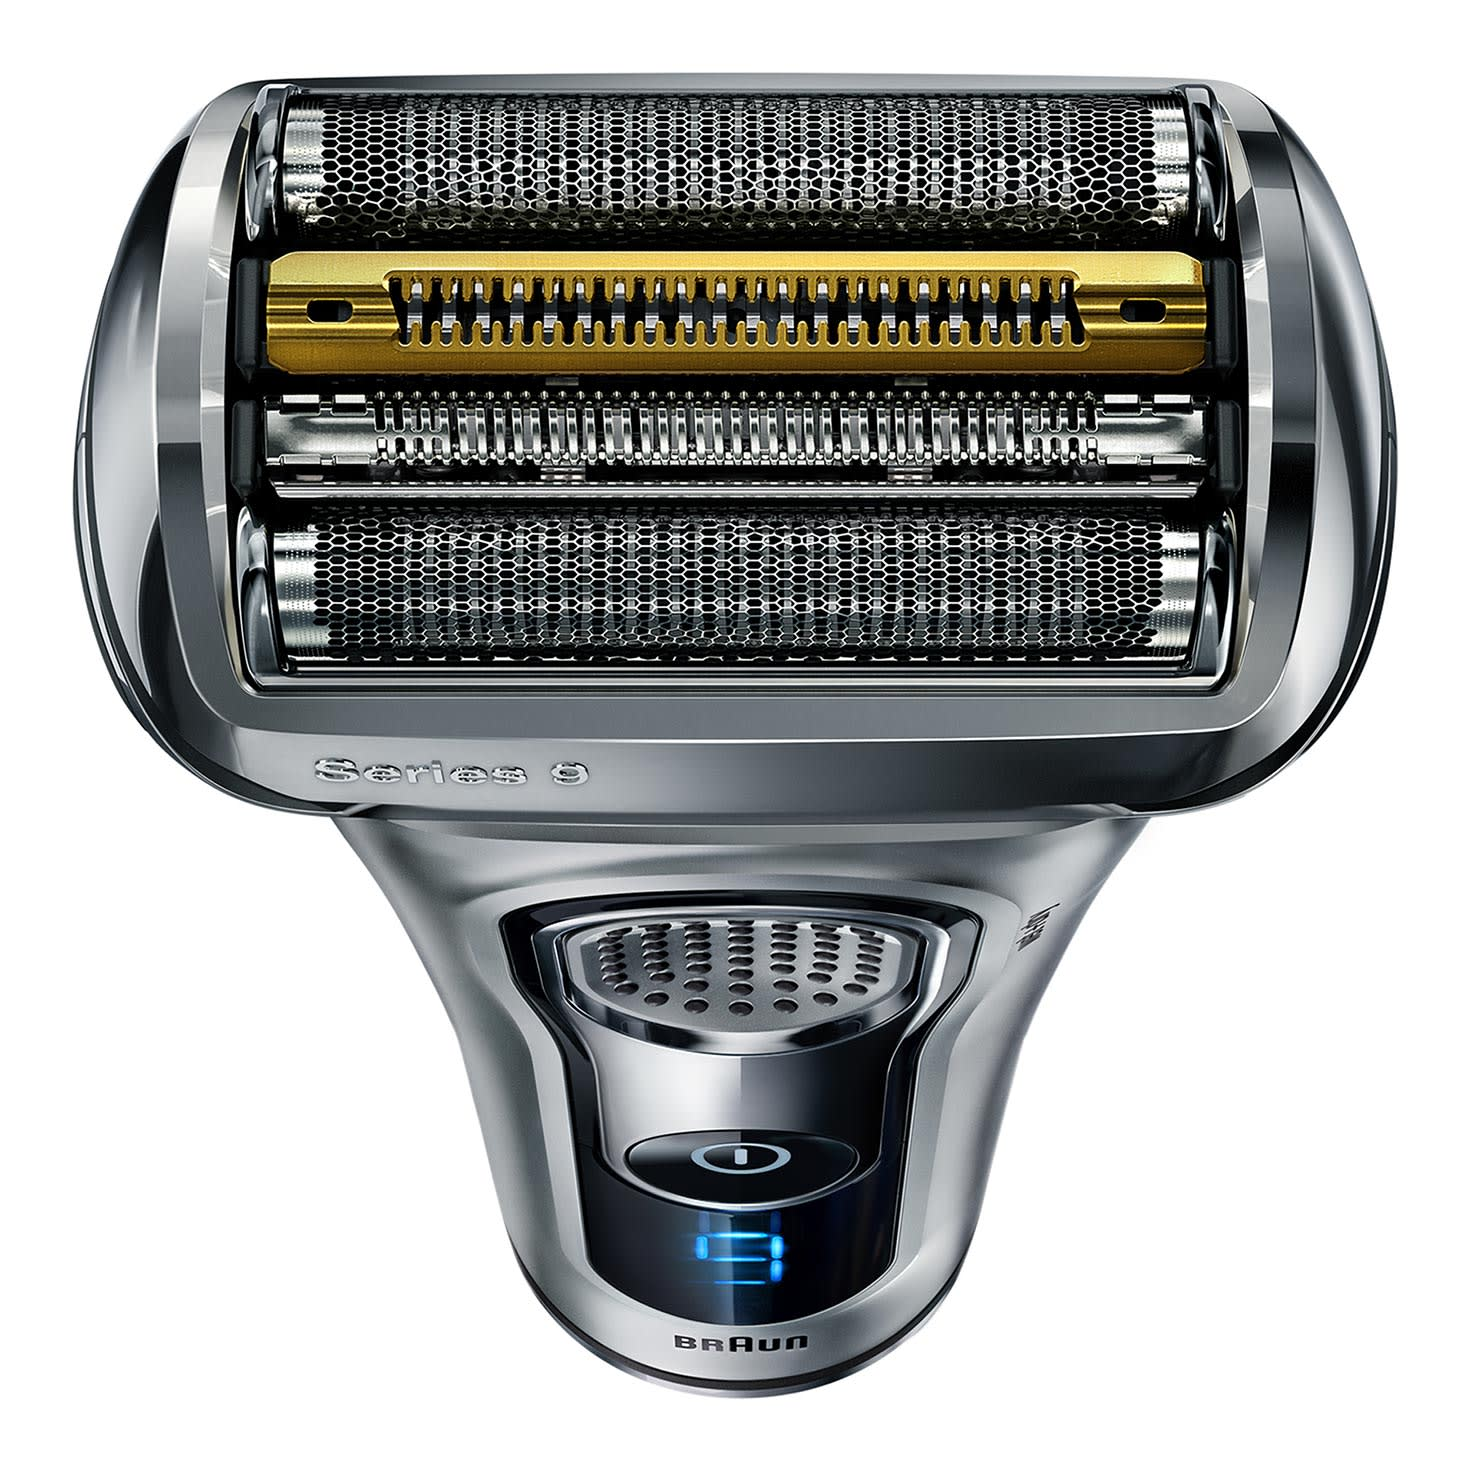 Series 9 9290cc Wet & Dry shaver image 2